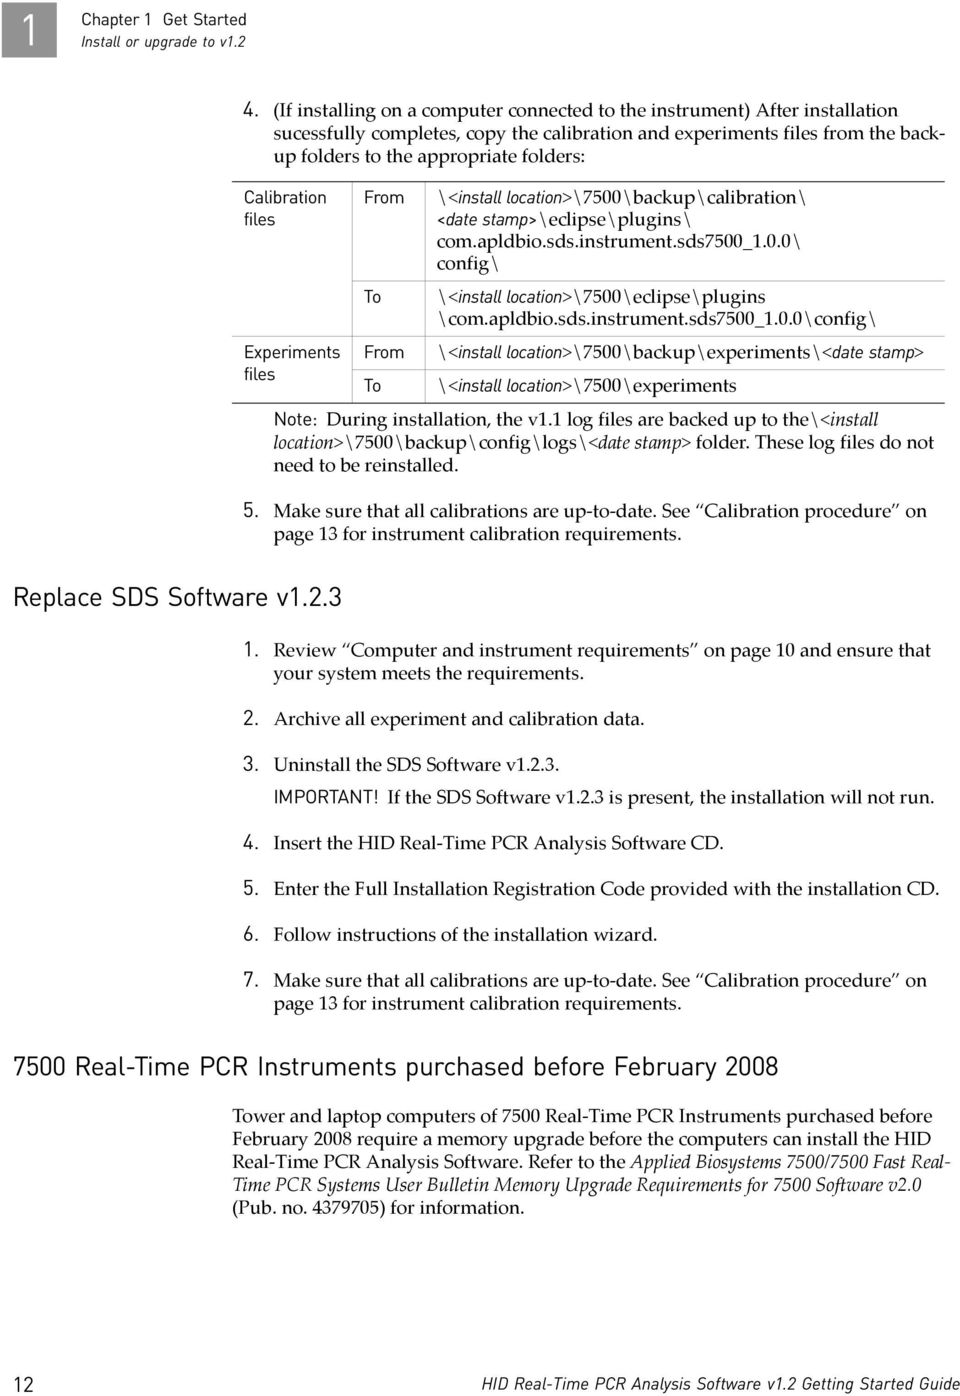 Hid Real Time Pcr Analysis Software Pdf Free Download